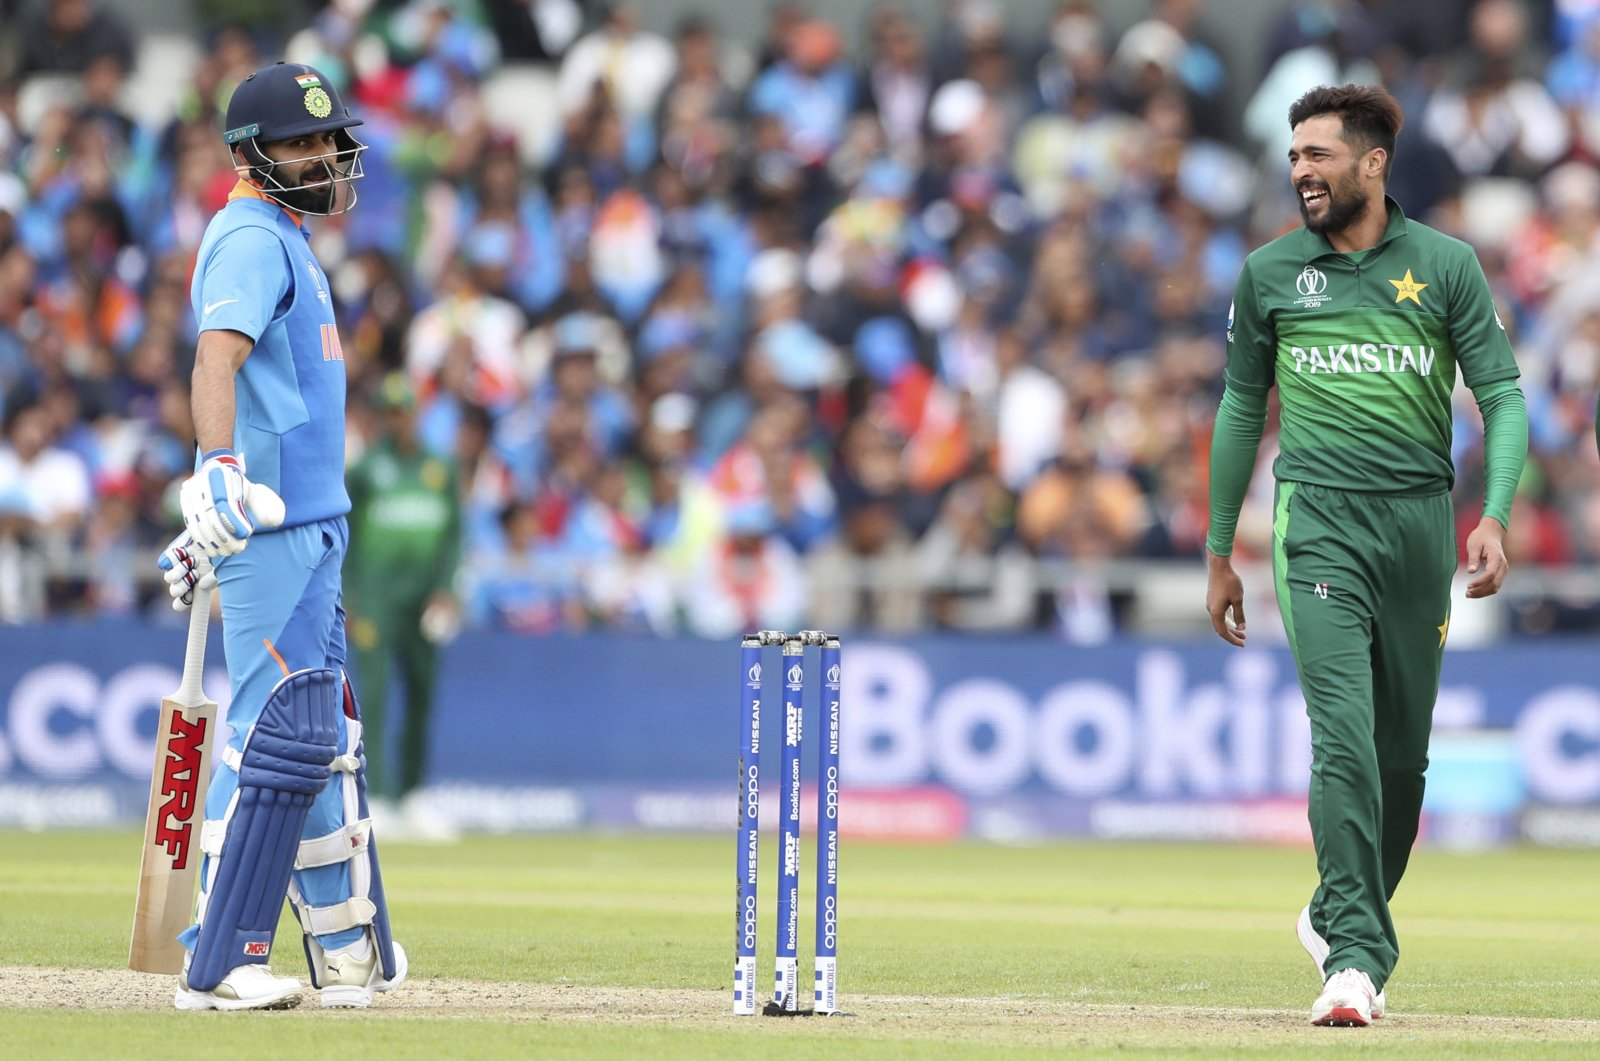 Pakistan's Mohammad Amir (R) talks to India's captain Virat Kohli (L) during a Cricket World Cup match at Old Trafford, Manchester, England, June 16, 2019. (AP Photo)